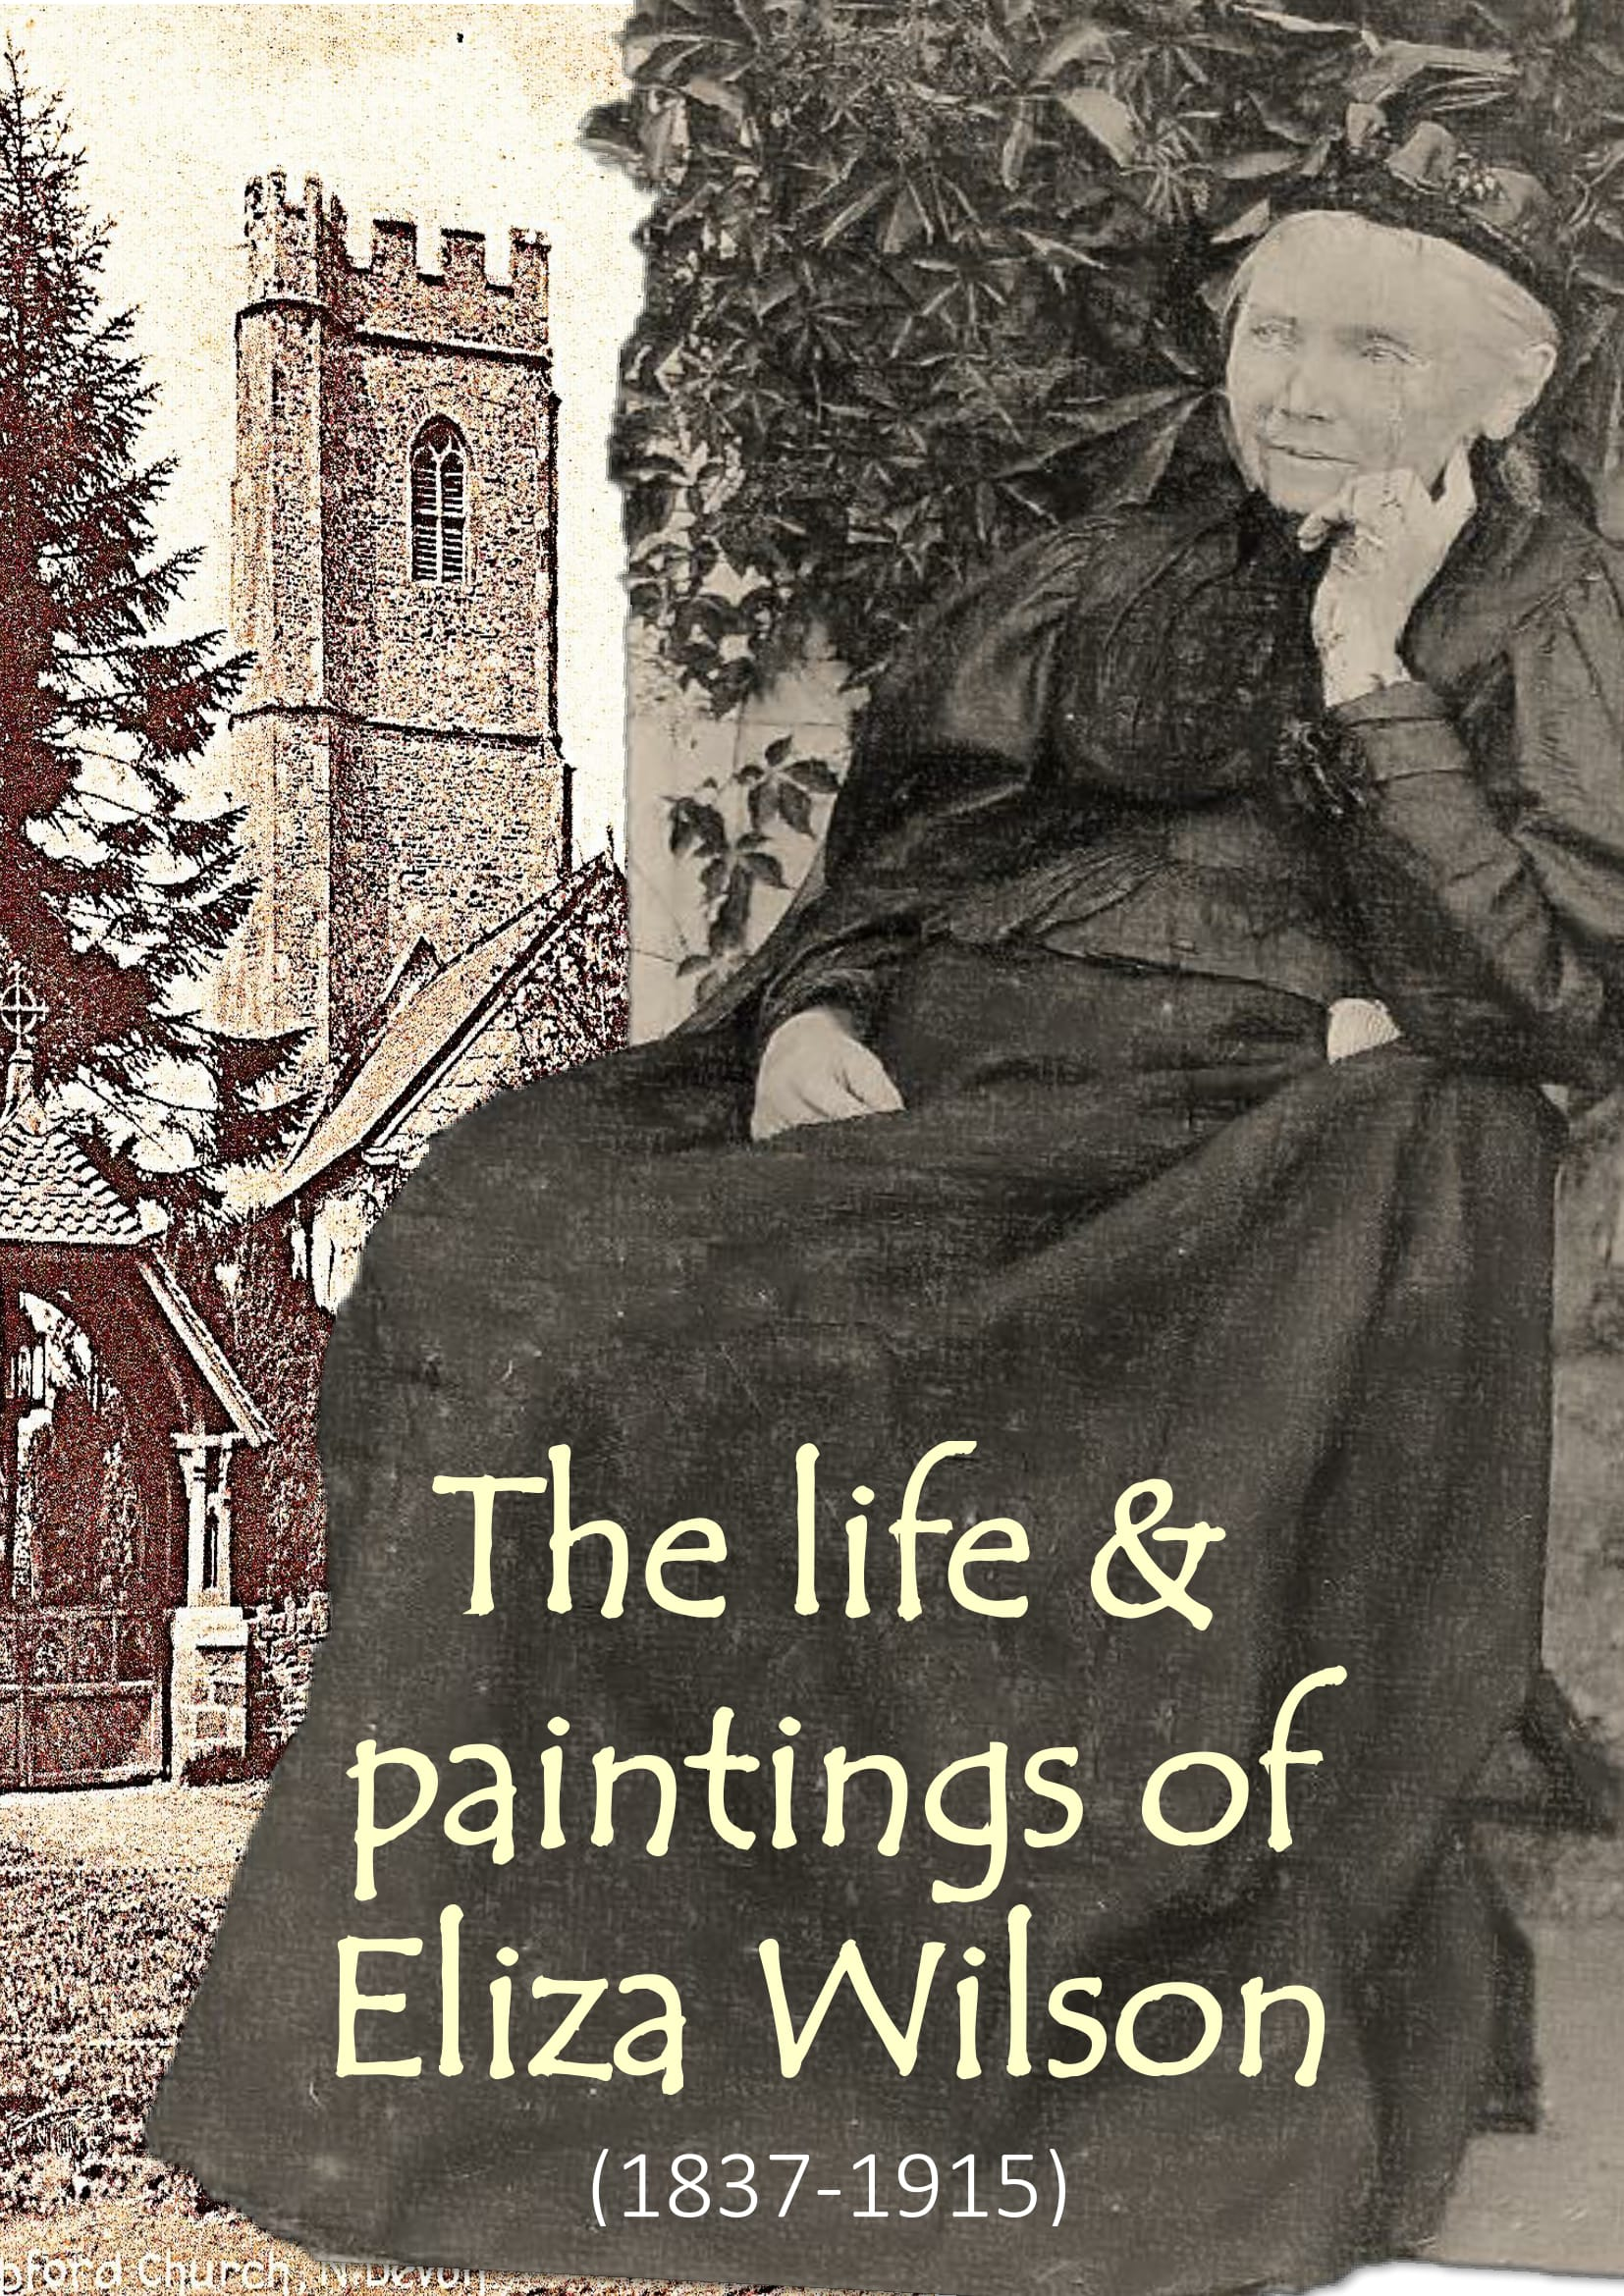 The life and paintings of Eliza Wilson 1837-1915